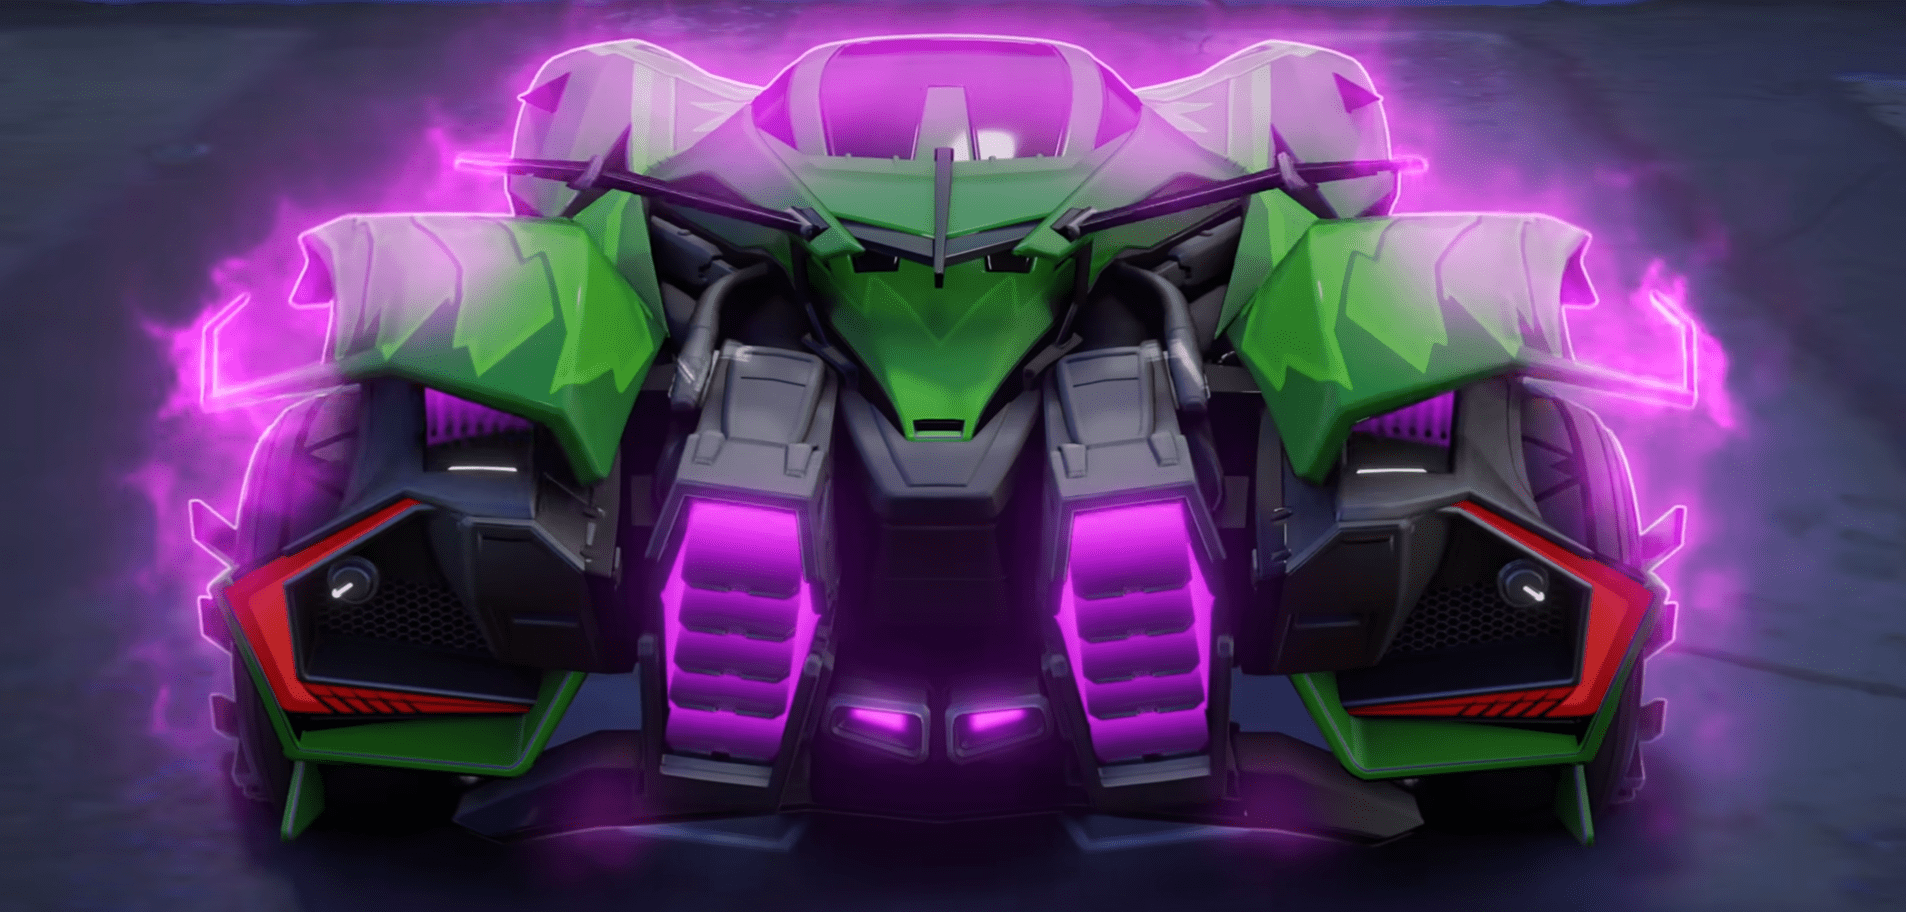 Rocket League's V1.70 Update, Also Known As The Blueprint Update, Is Now Live!